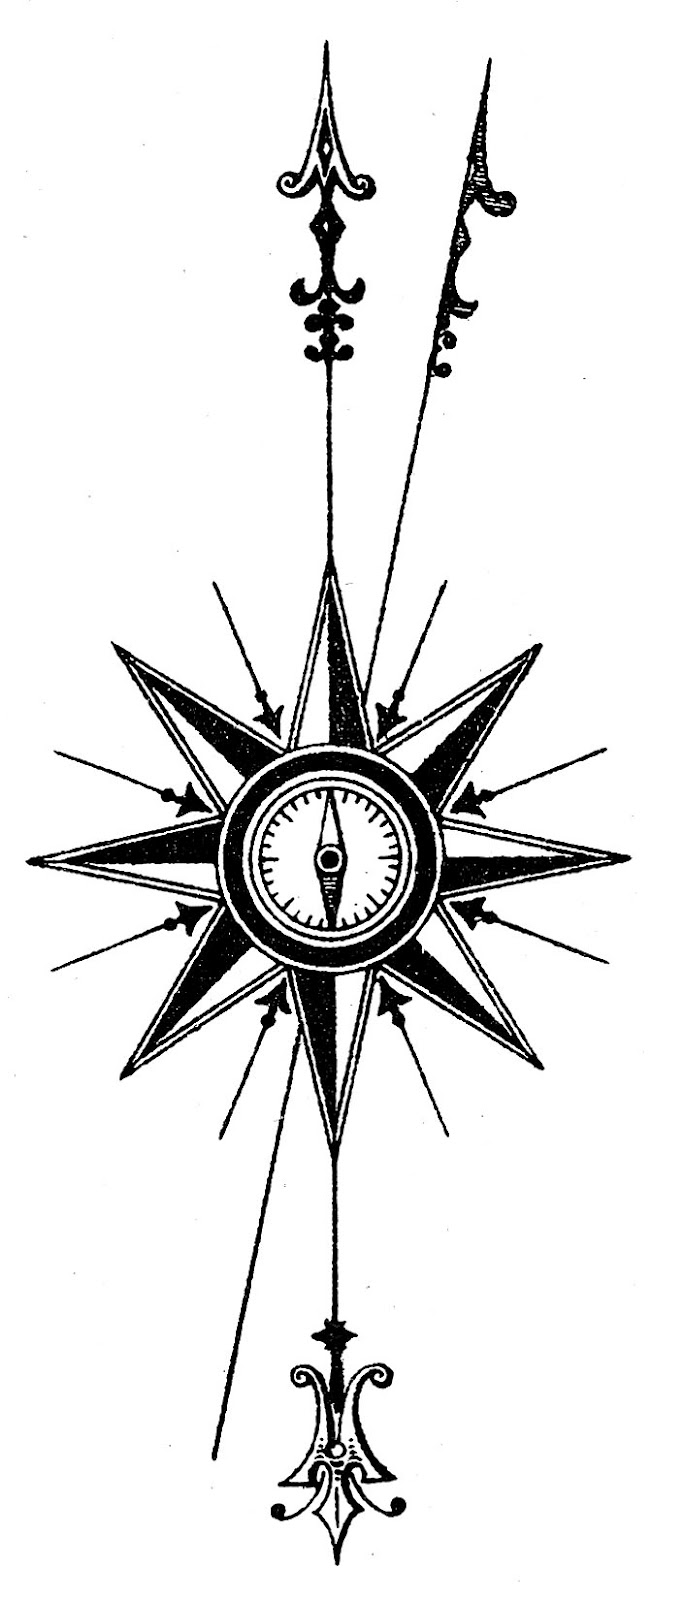 Compass Rose Drawing - ClipArt Best